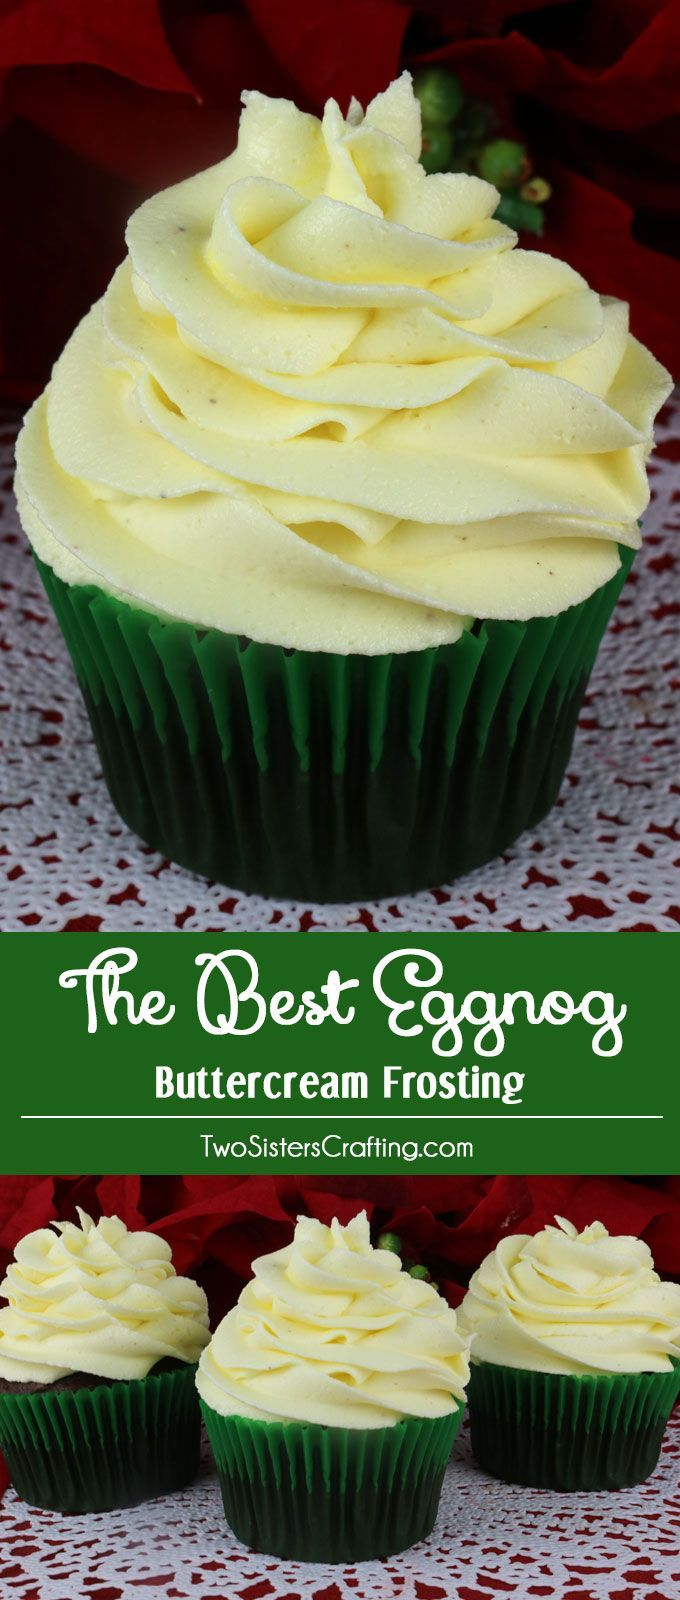 This is definitely The Best Eggnog Buttercream Frosting we have ever tasted and it is so easy to make. Sweet, creamy and delicious - and it tastes just like a glass of Eggnog. It is the perfect Holiday frosting for cupcakes, cakes or cookies! Pin this Christmas Treat for later and follow us for more great Christmas Dessert ideas.